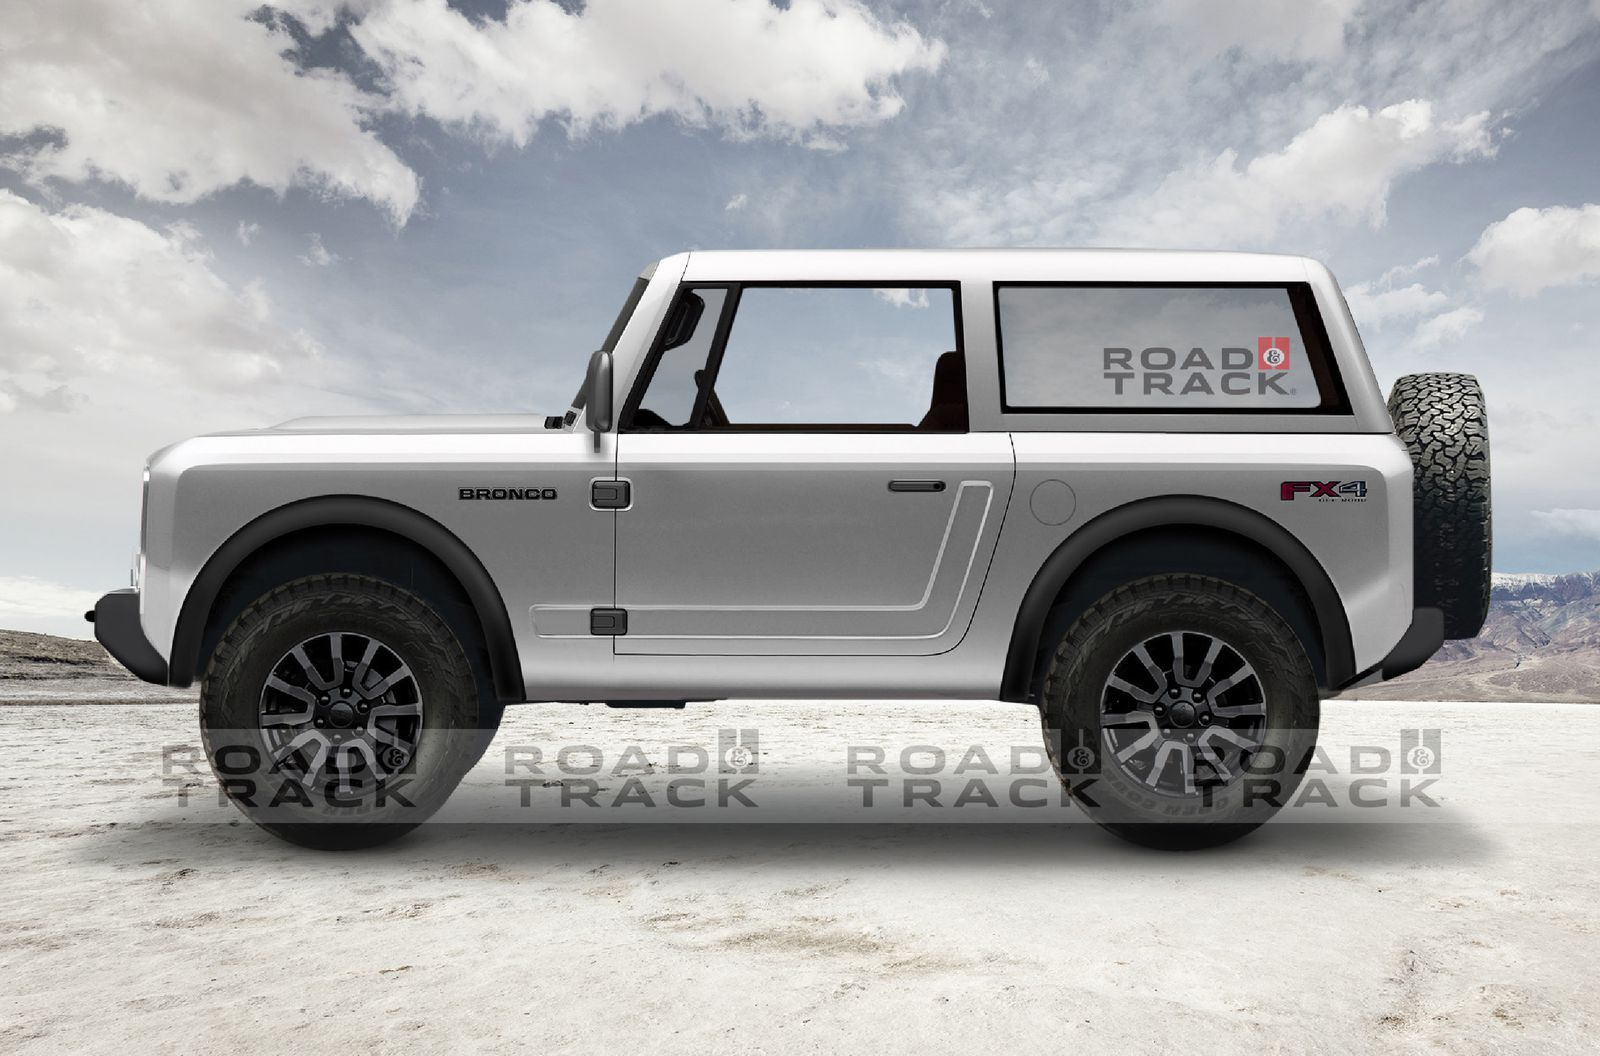 Here S What We Think The 2020 Ford Bronco Will Look Like Ford Bronco Ford Bronco Concept Bronco